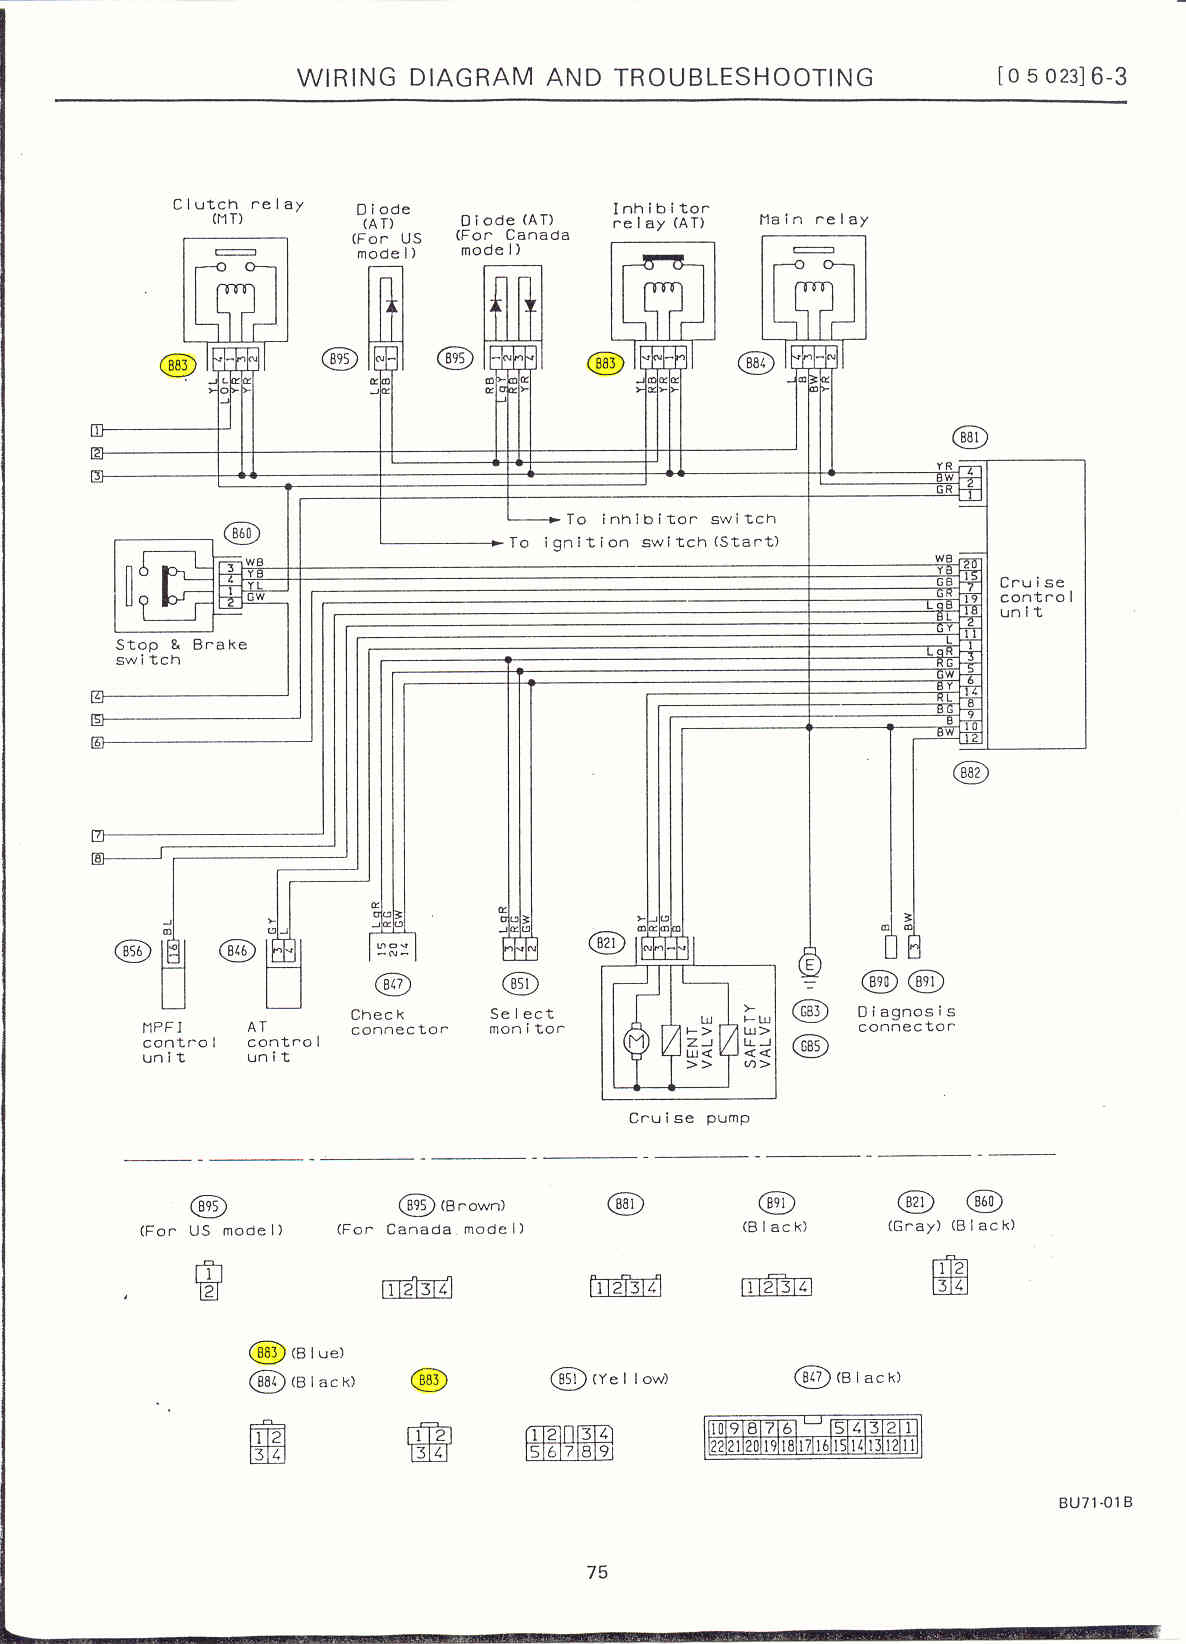 1997 subaru legacy outback stereo wiring diagram 1997 subaru legacy outback transmission wiring surrealmirage - subaru legacy swap electrical info & notes